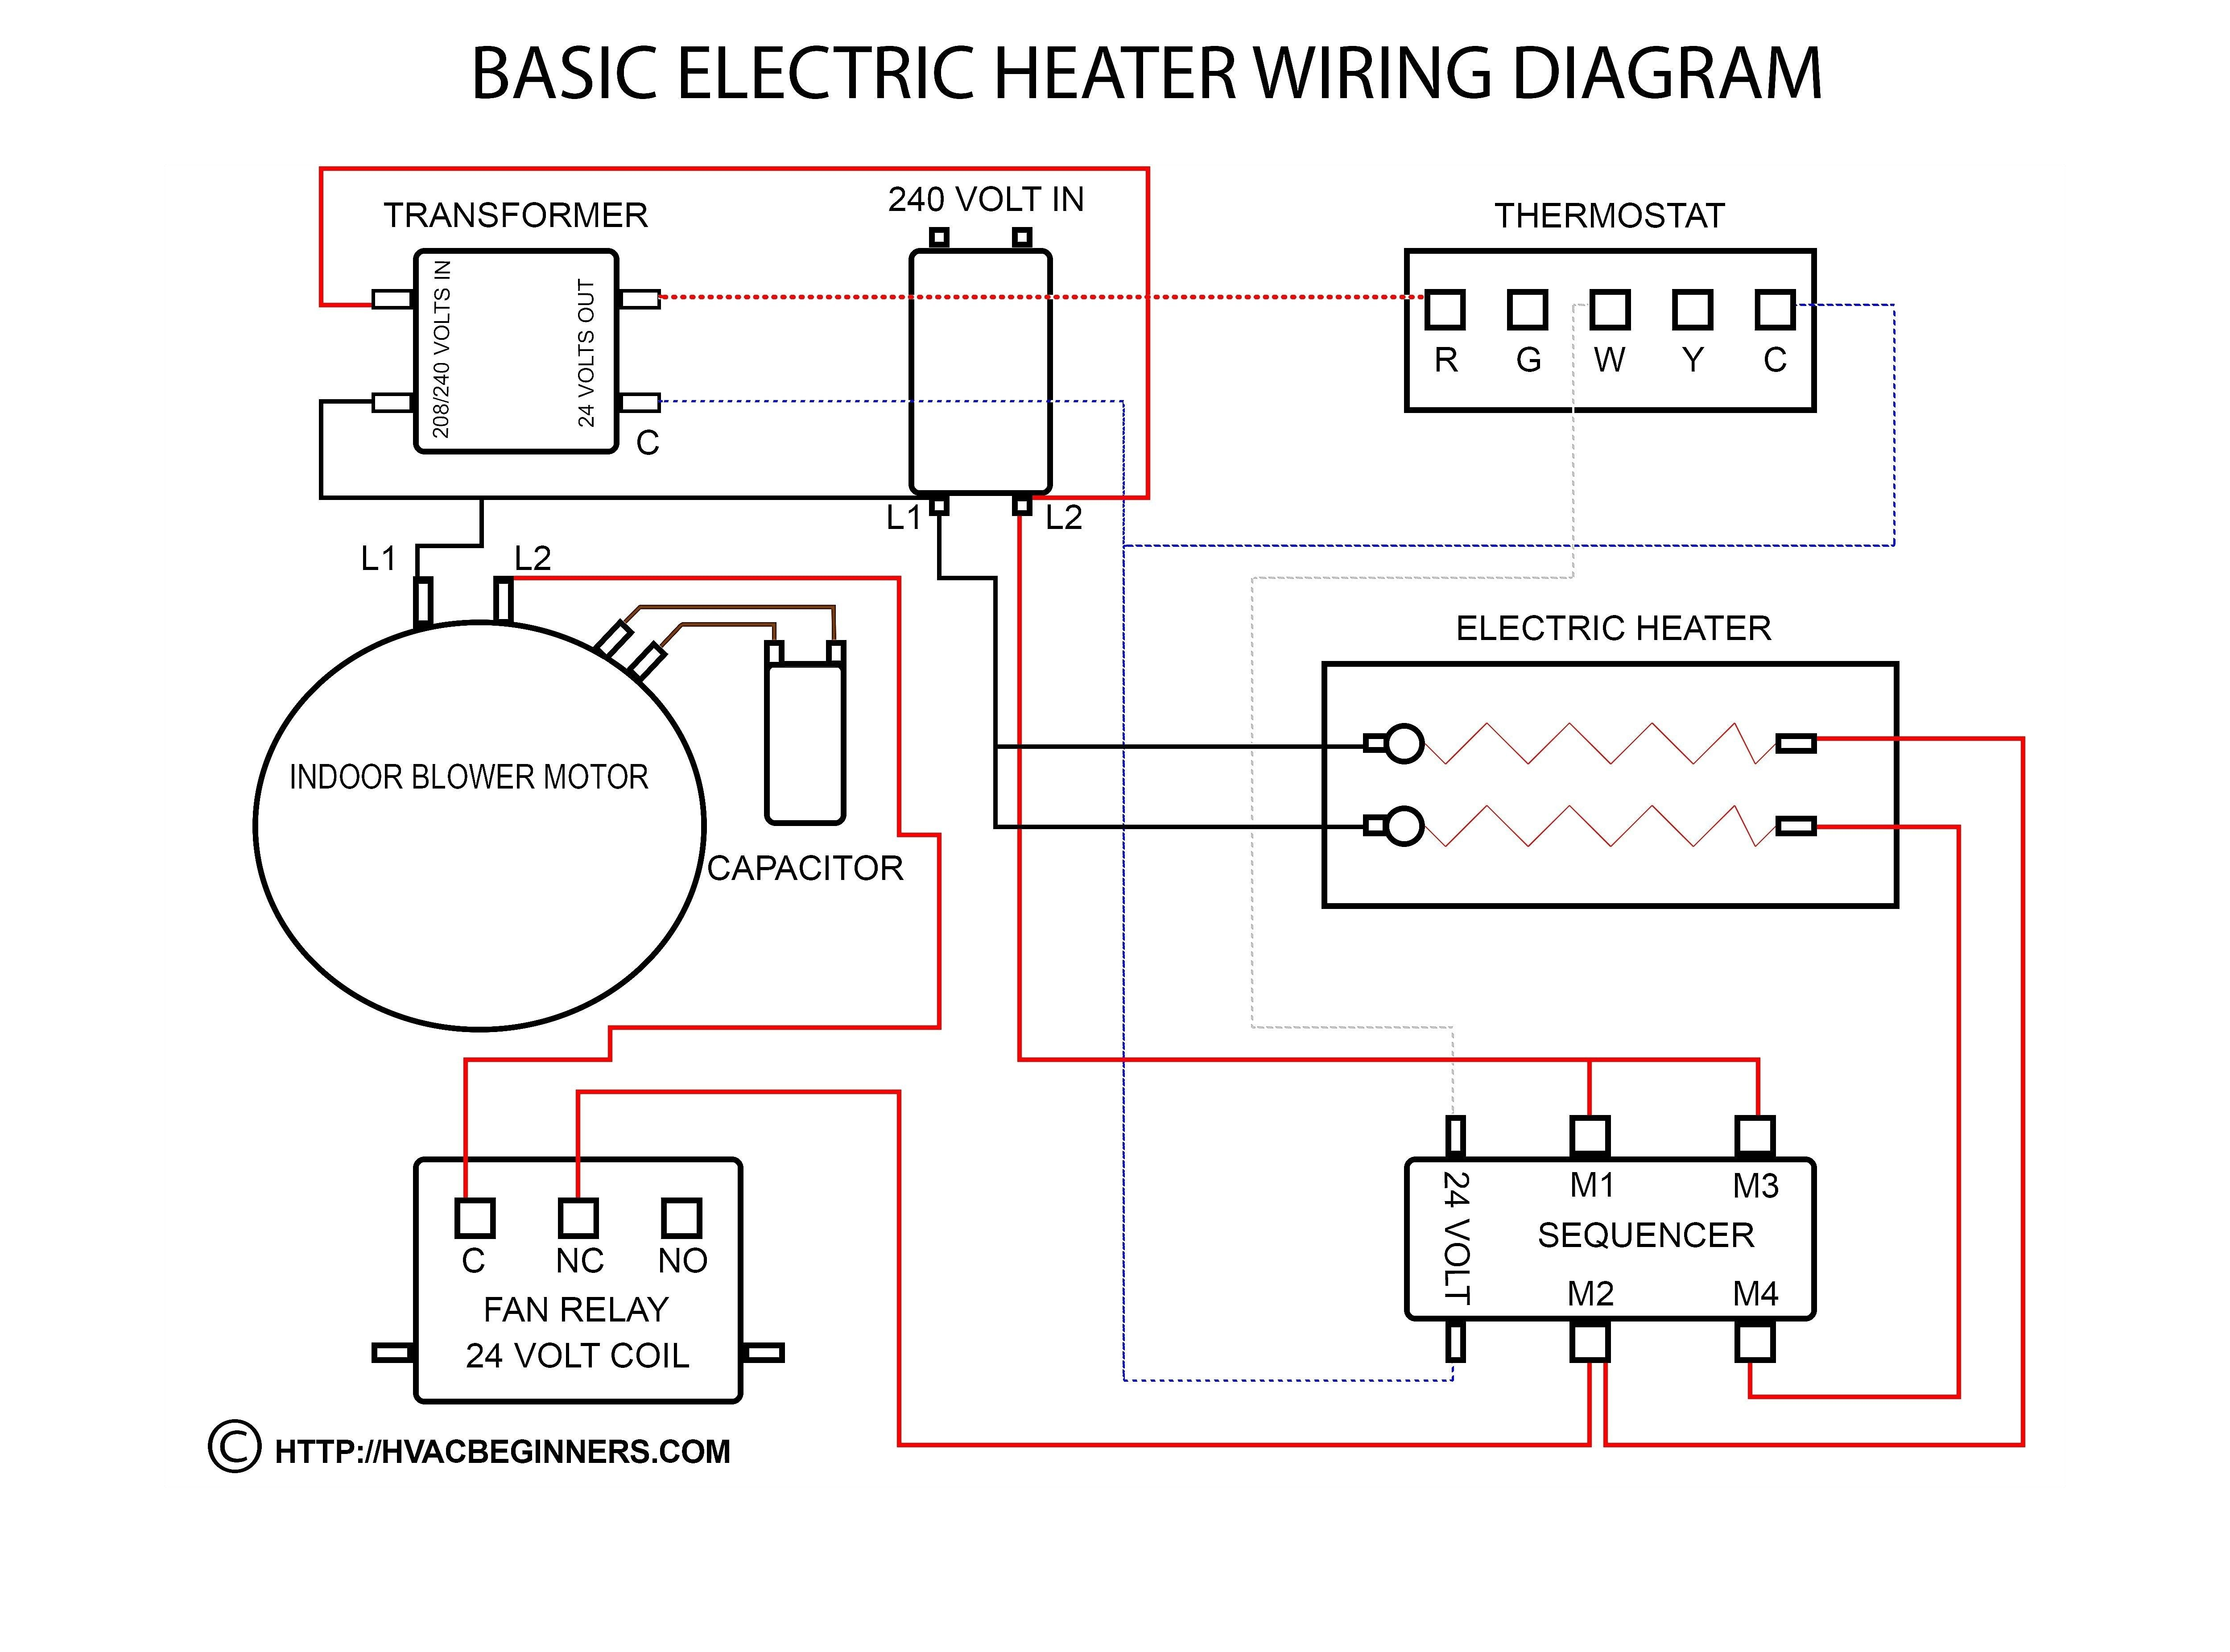 Unique Old Gas Furnace Wiring Diagram Diagram Diagramsample Diagramtemplate Wiringdi Electrical Circuit Diagram Thermostat Wiring Electrical Wiring Diagram